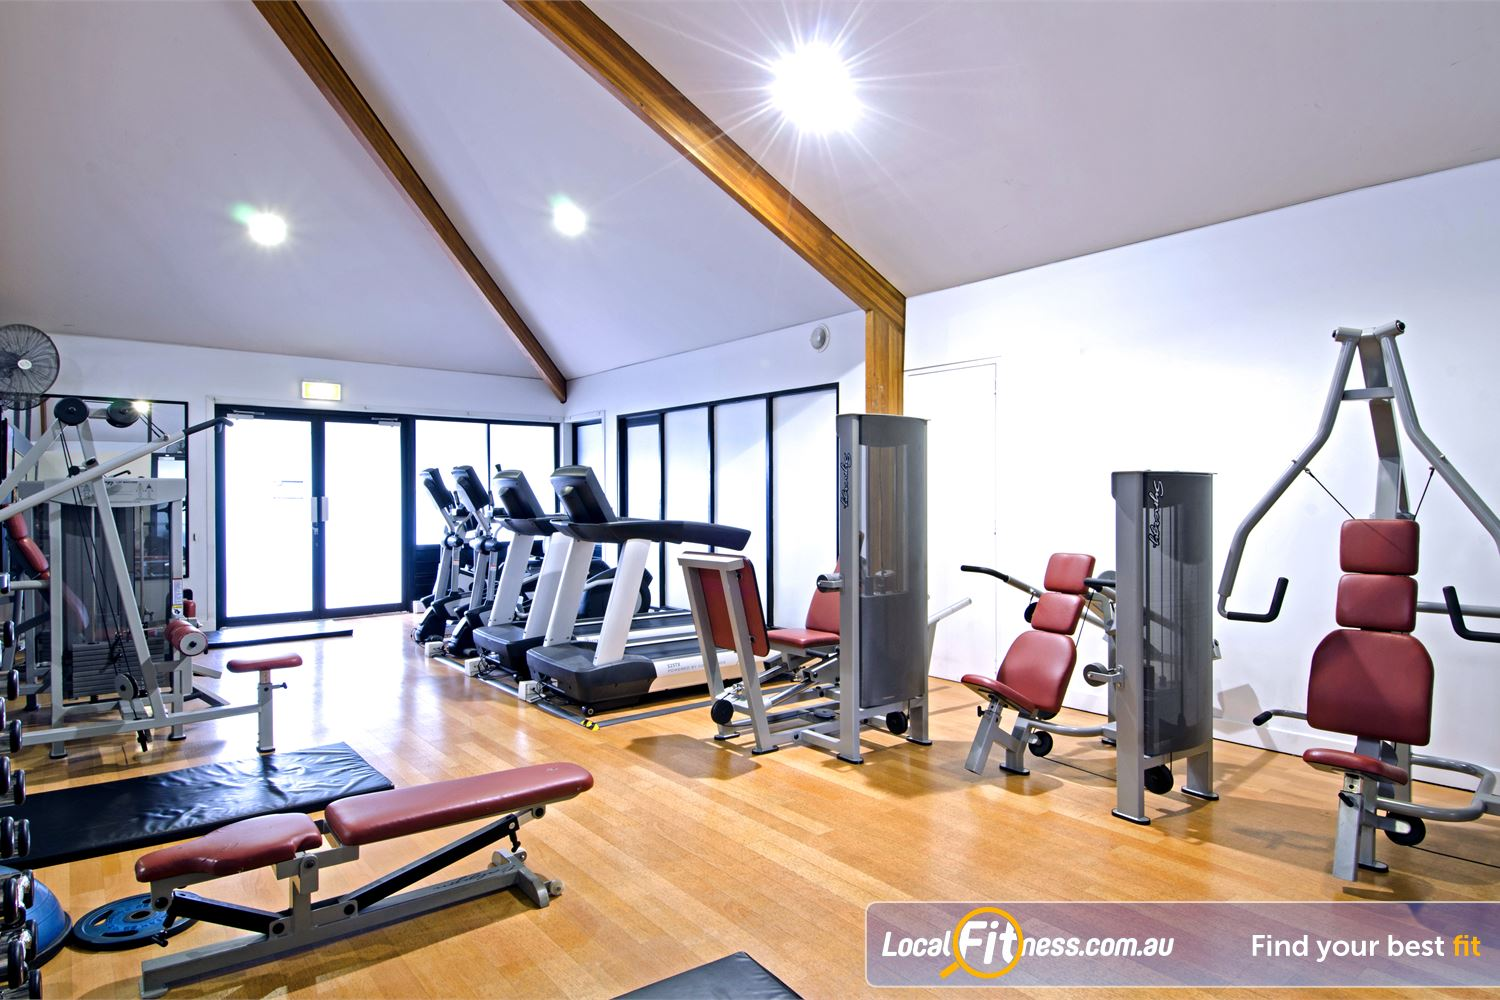 Goodlife Health Clubs Carseldine Welcome to our Carseldine gym, a 2000 sq/m fitness facility.